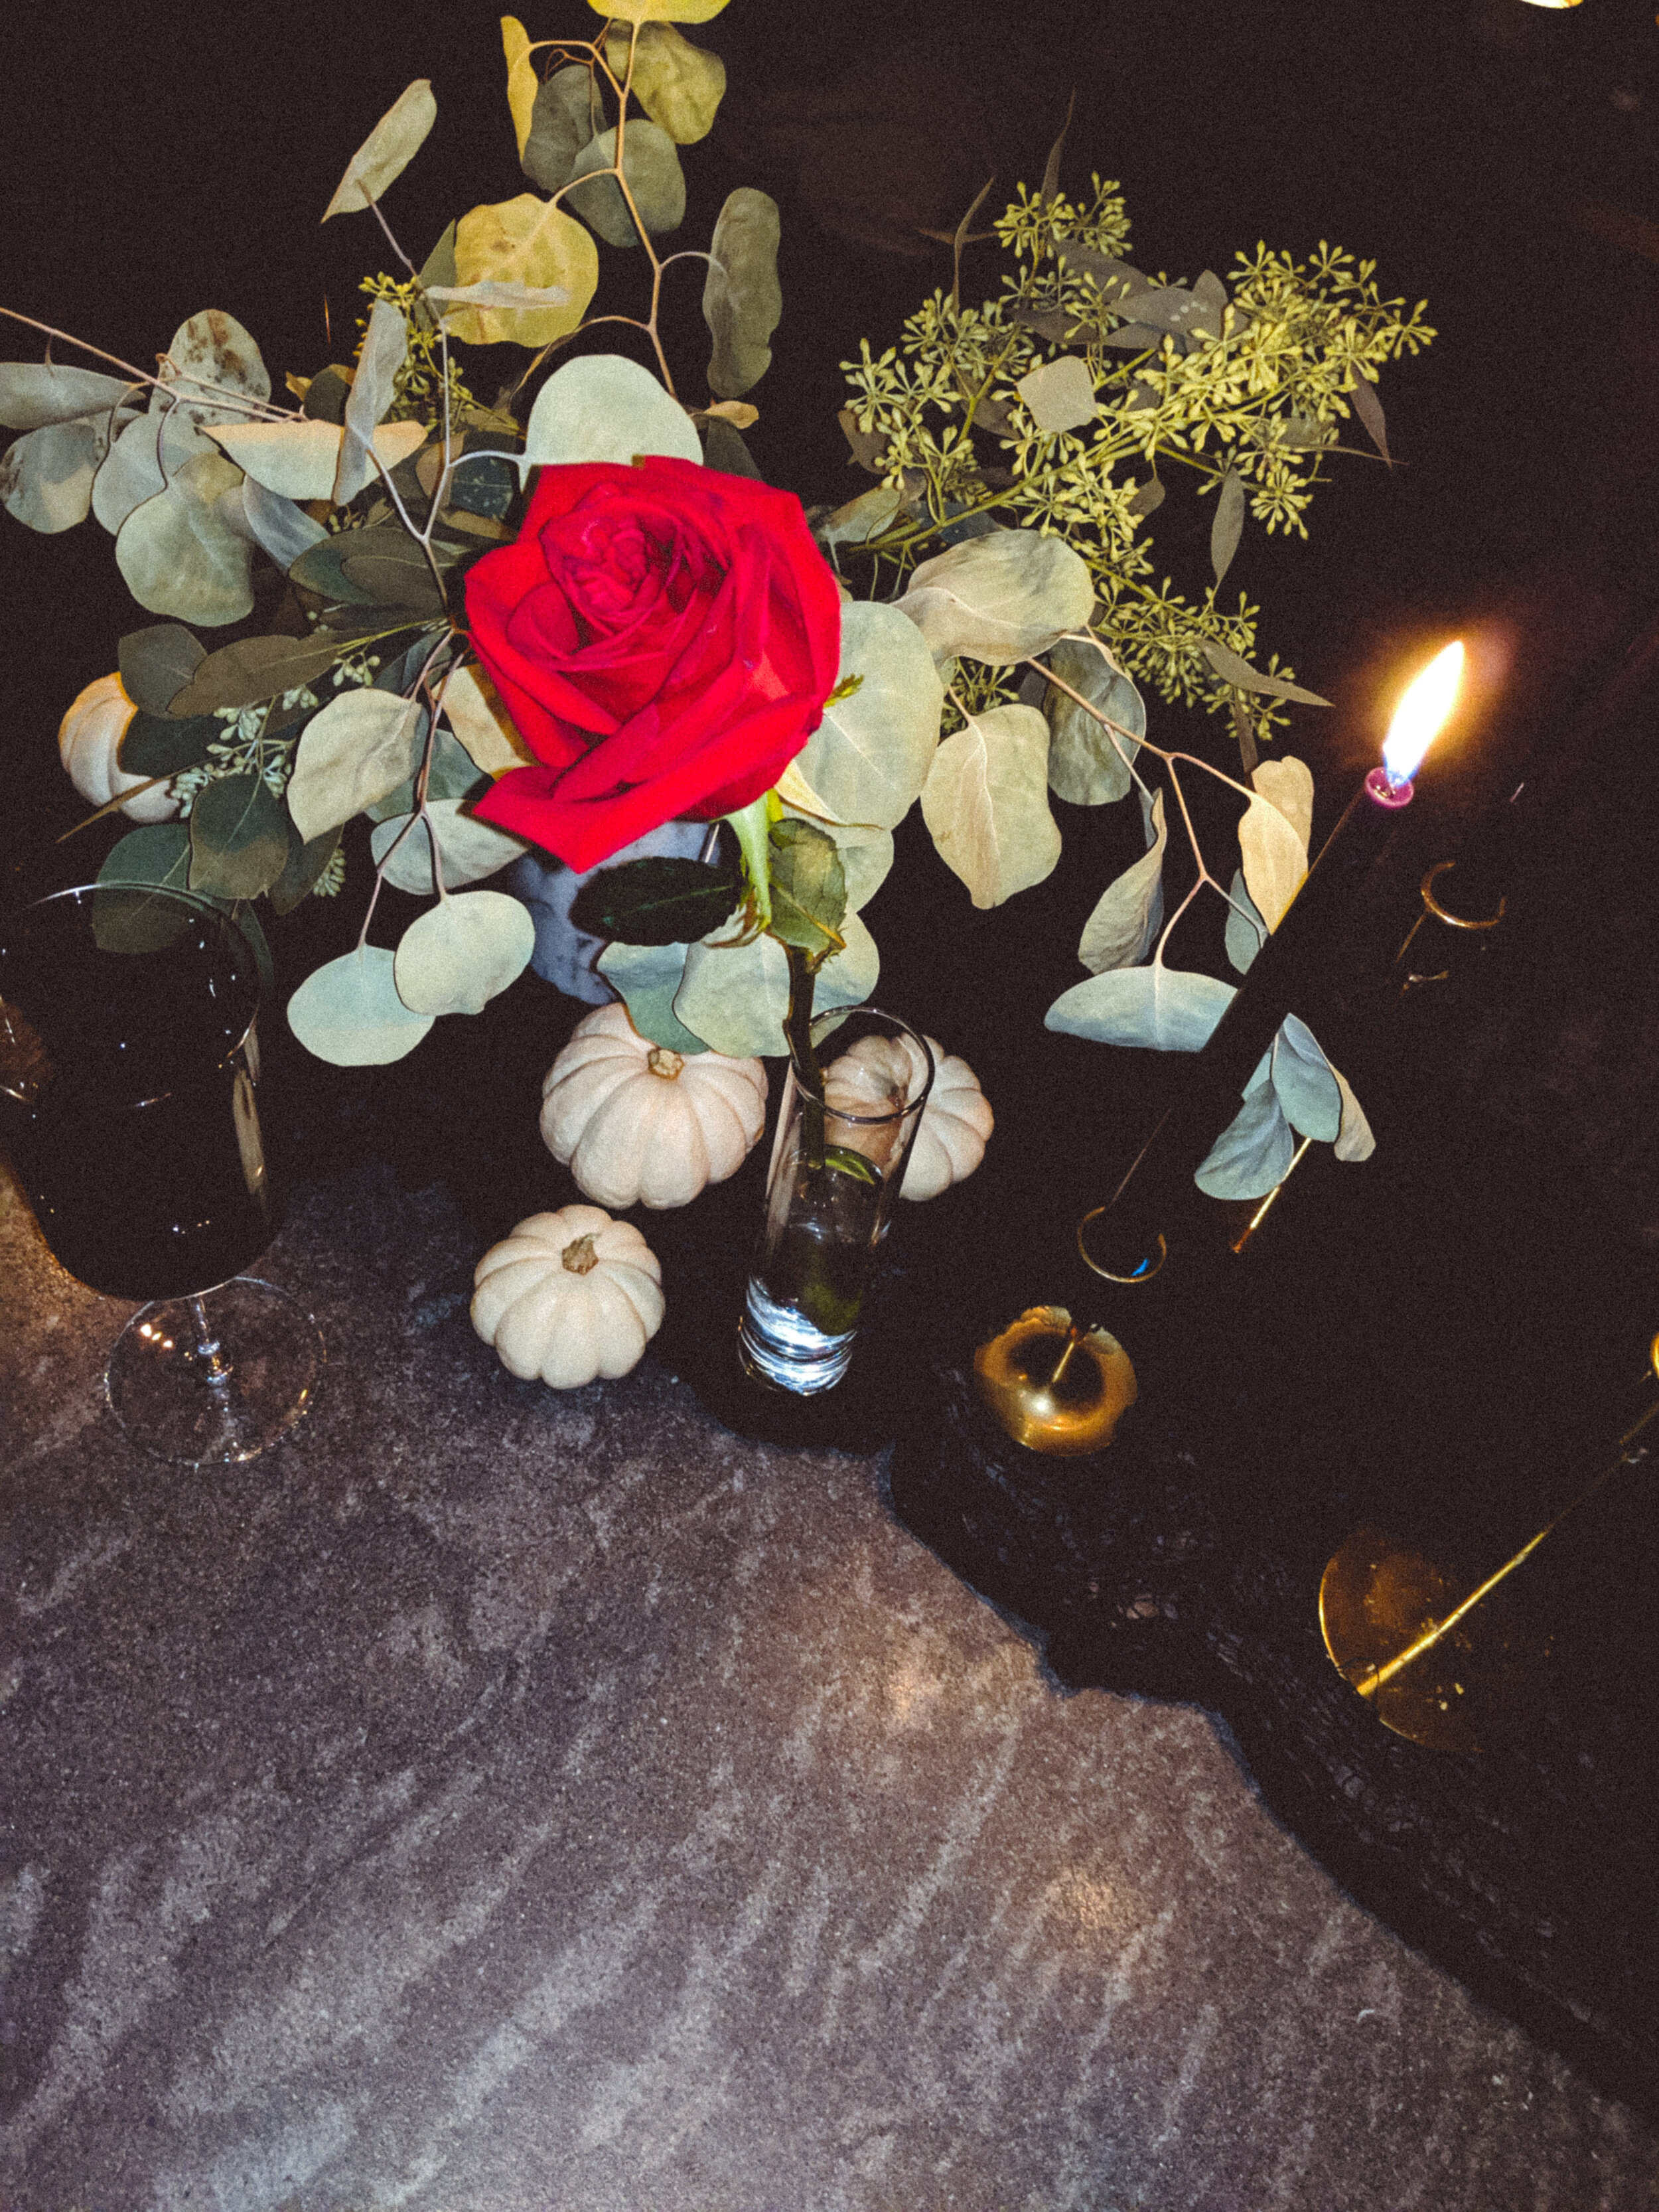 Always Looking For The Magic - Nicole Toland - Spooky Chic Halloween Styling-6.jpg